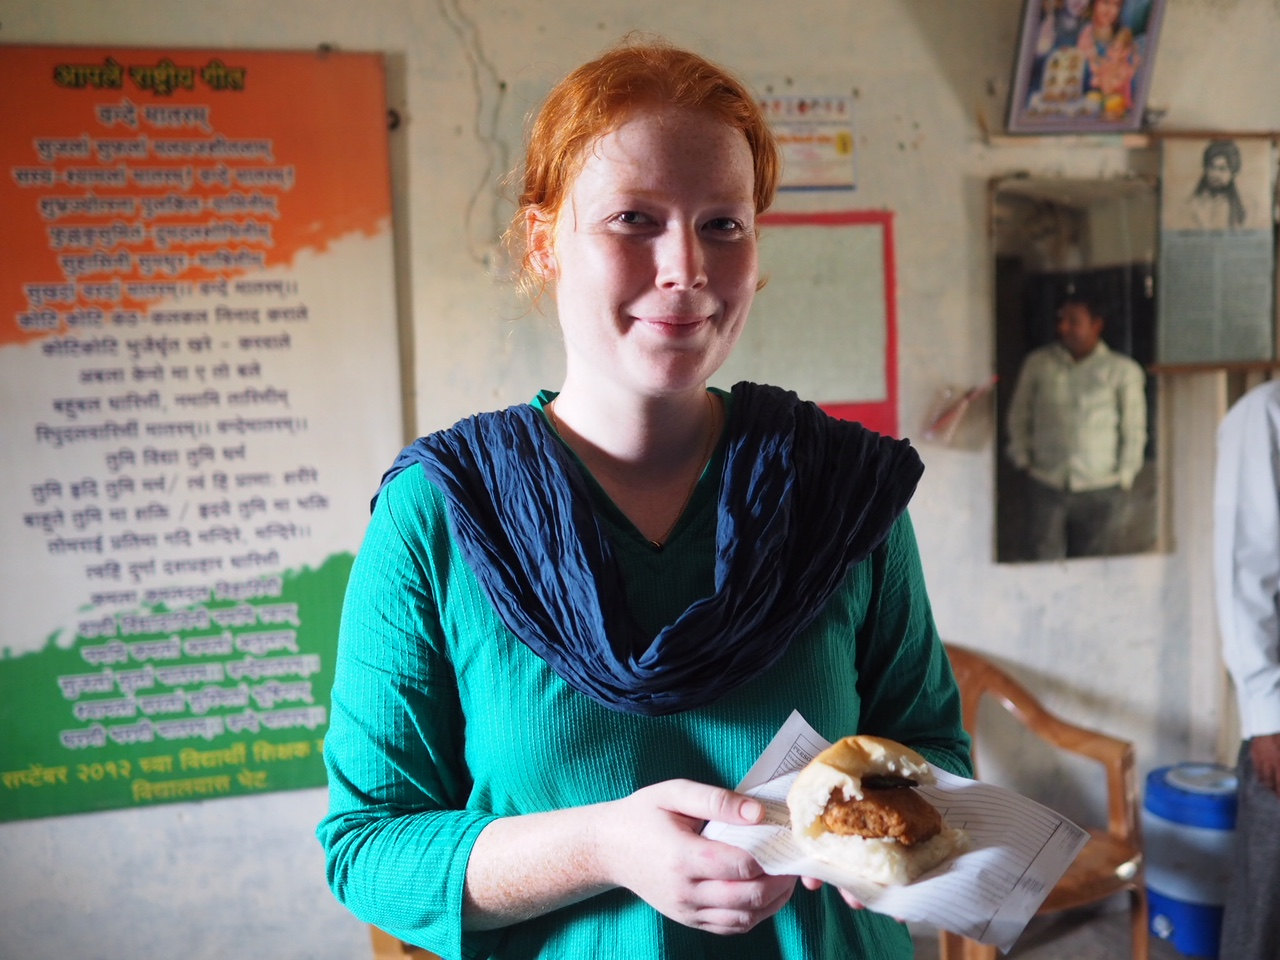 Molly Bowers UNSW Drishtee Immersion India